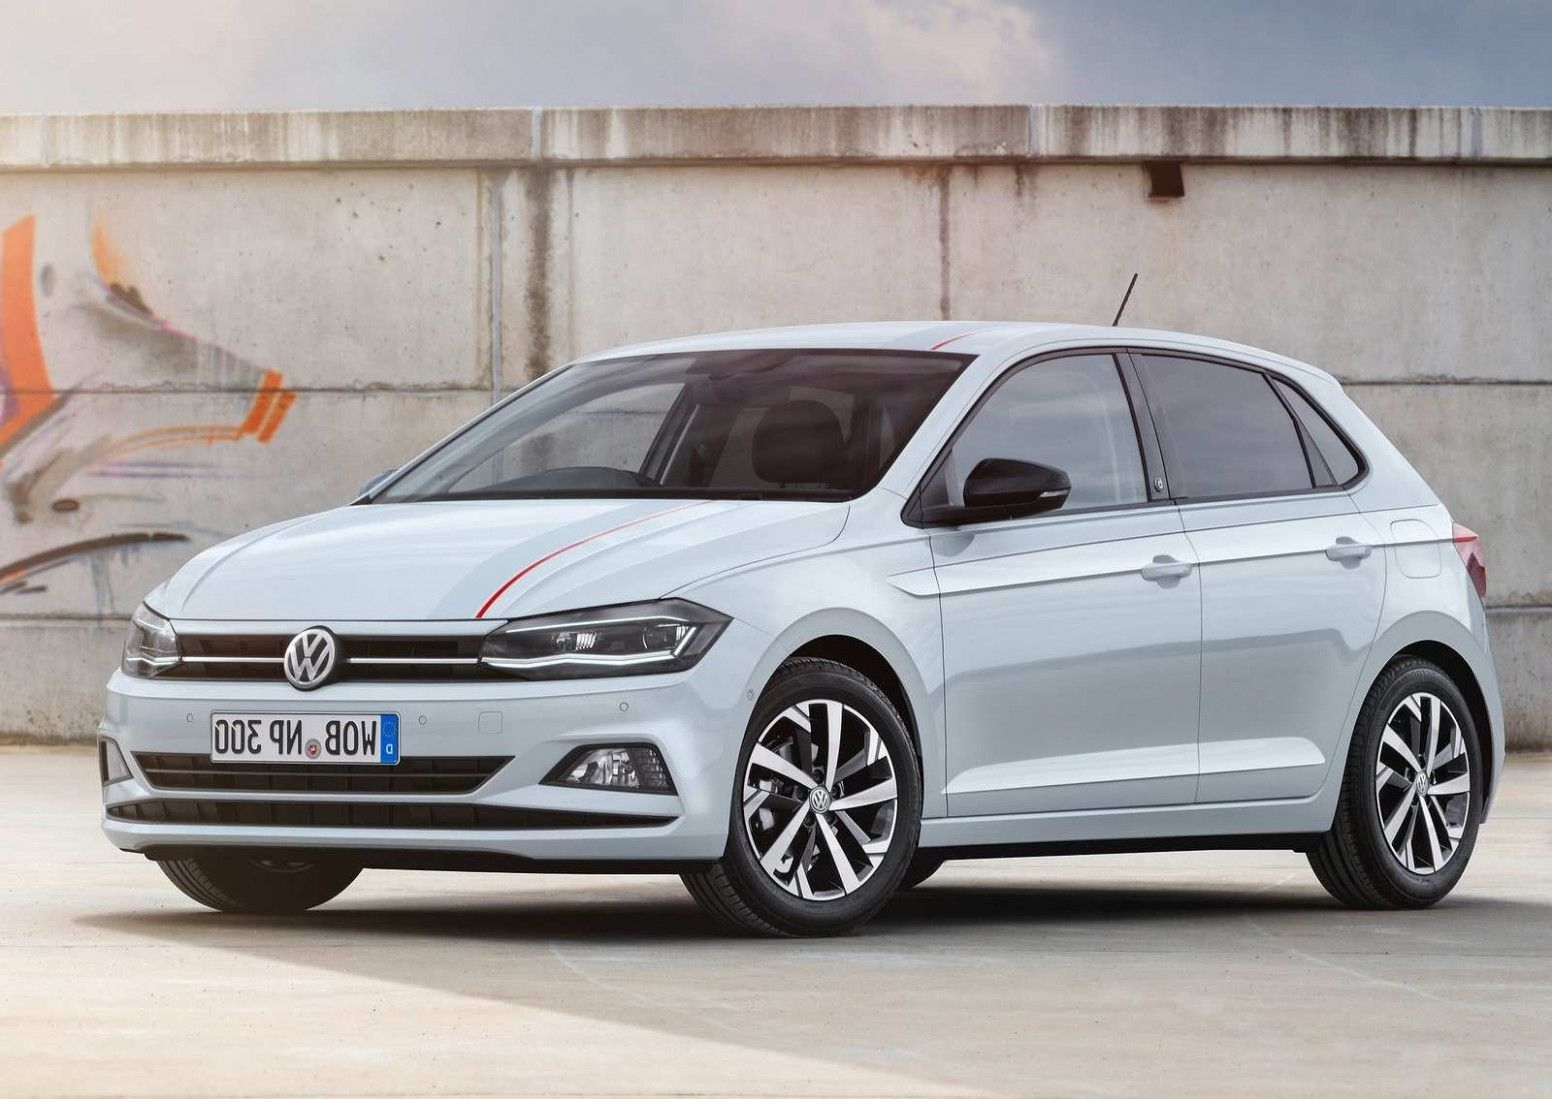 5 Things You Didnt Know About Volkswagen Polo 2020 Price Volkswagen Polo Volkswagen Vw Polo